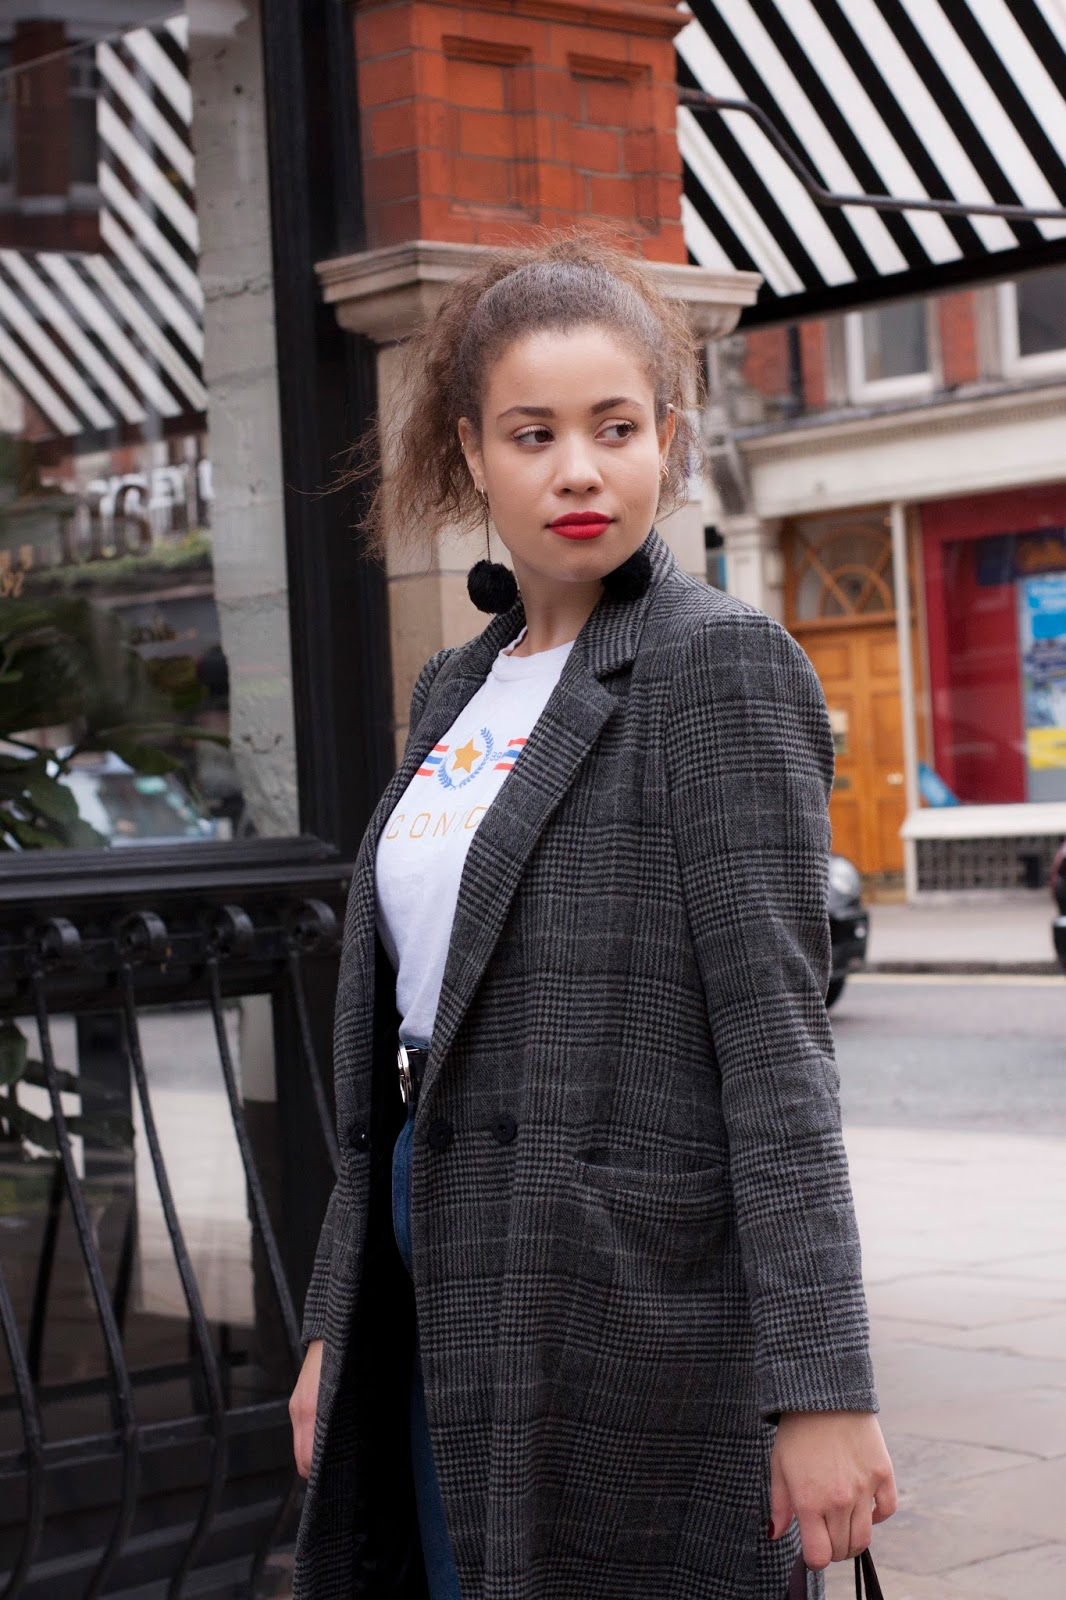 Eboni wearing grey check coat, black pom pom earrings and red lipstick